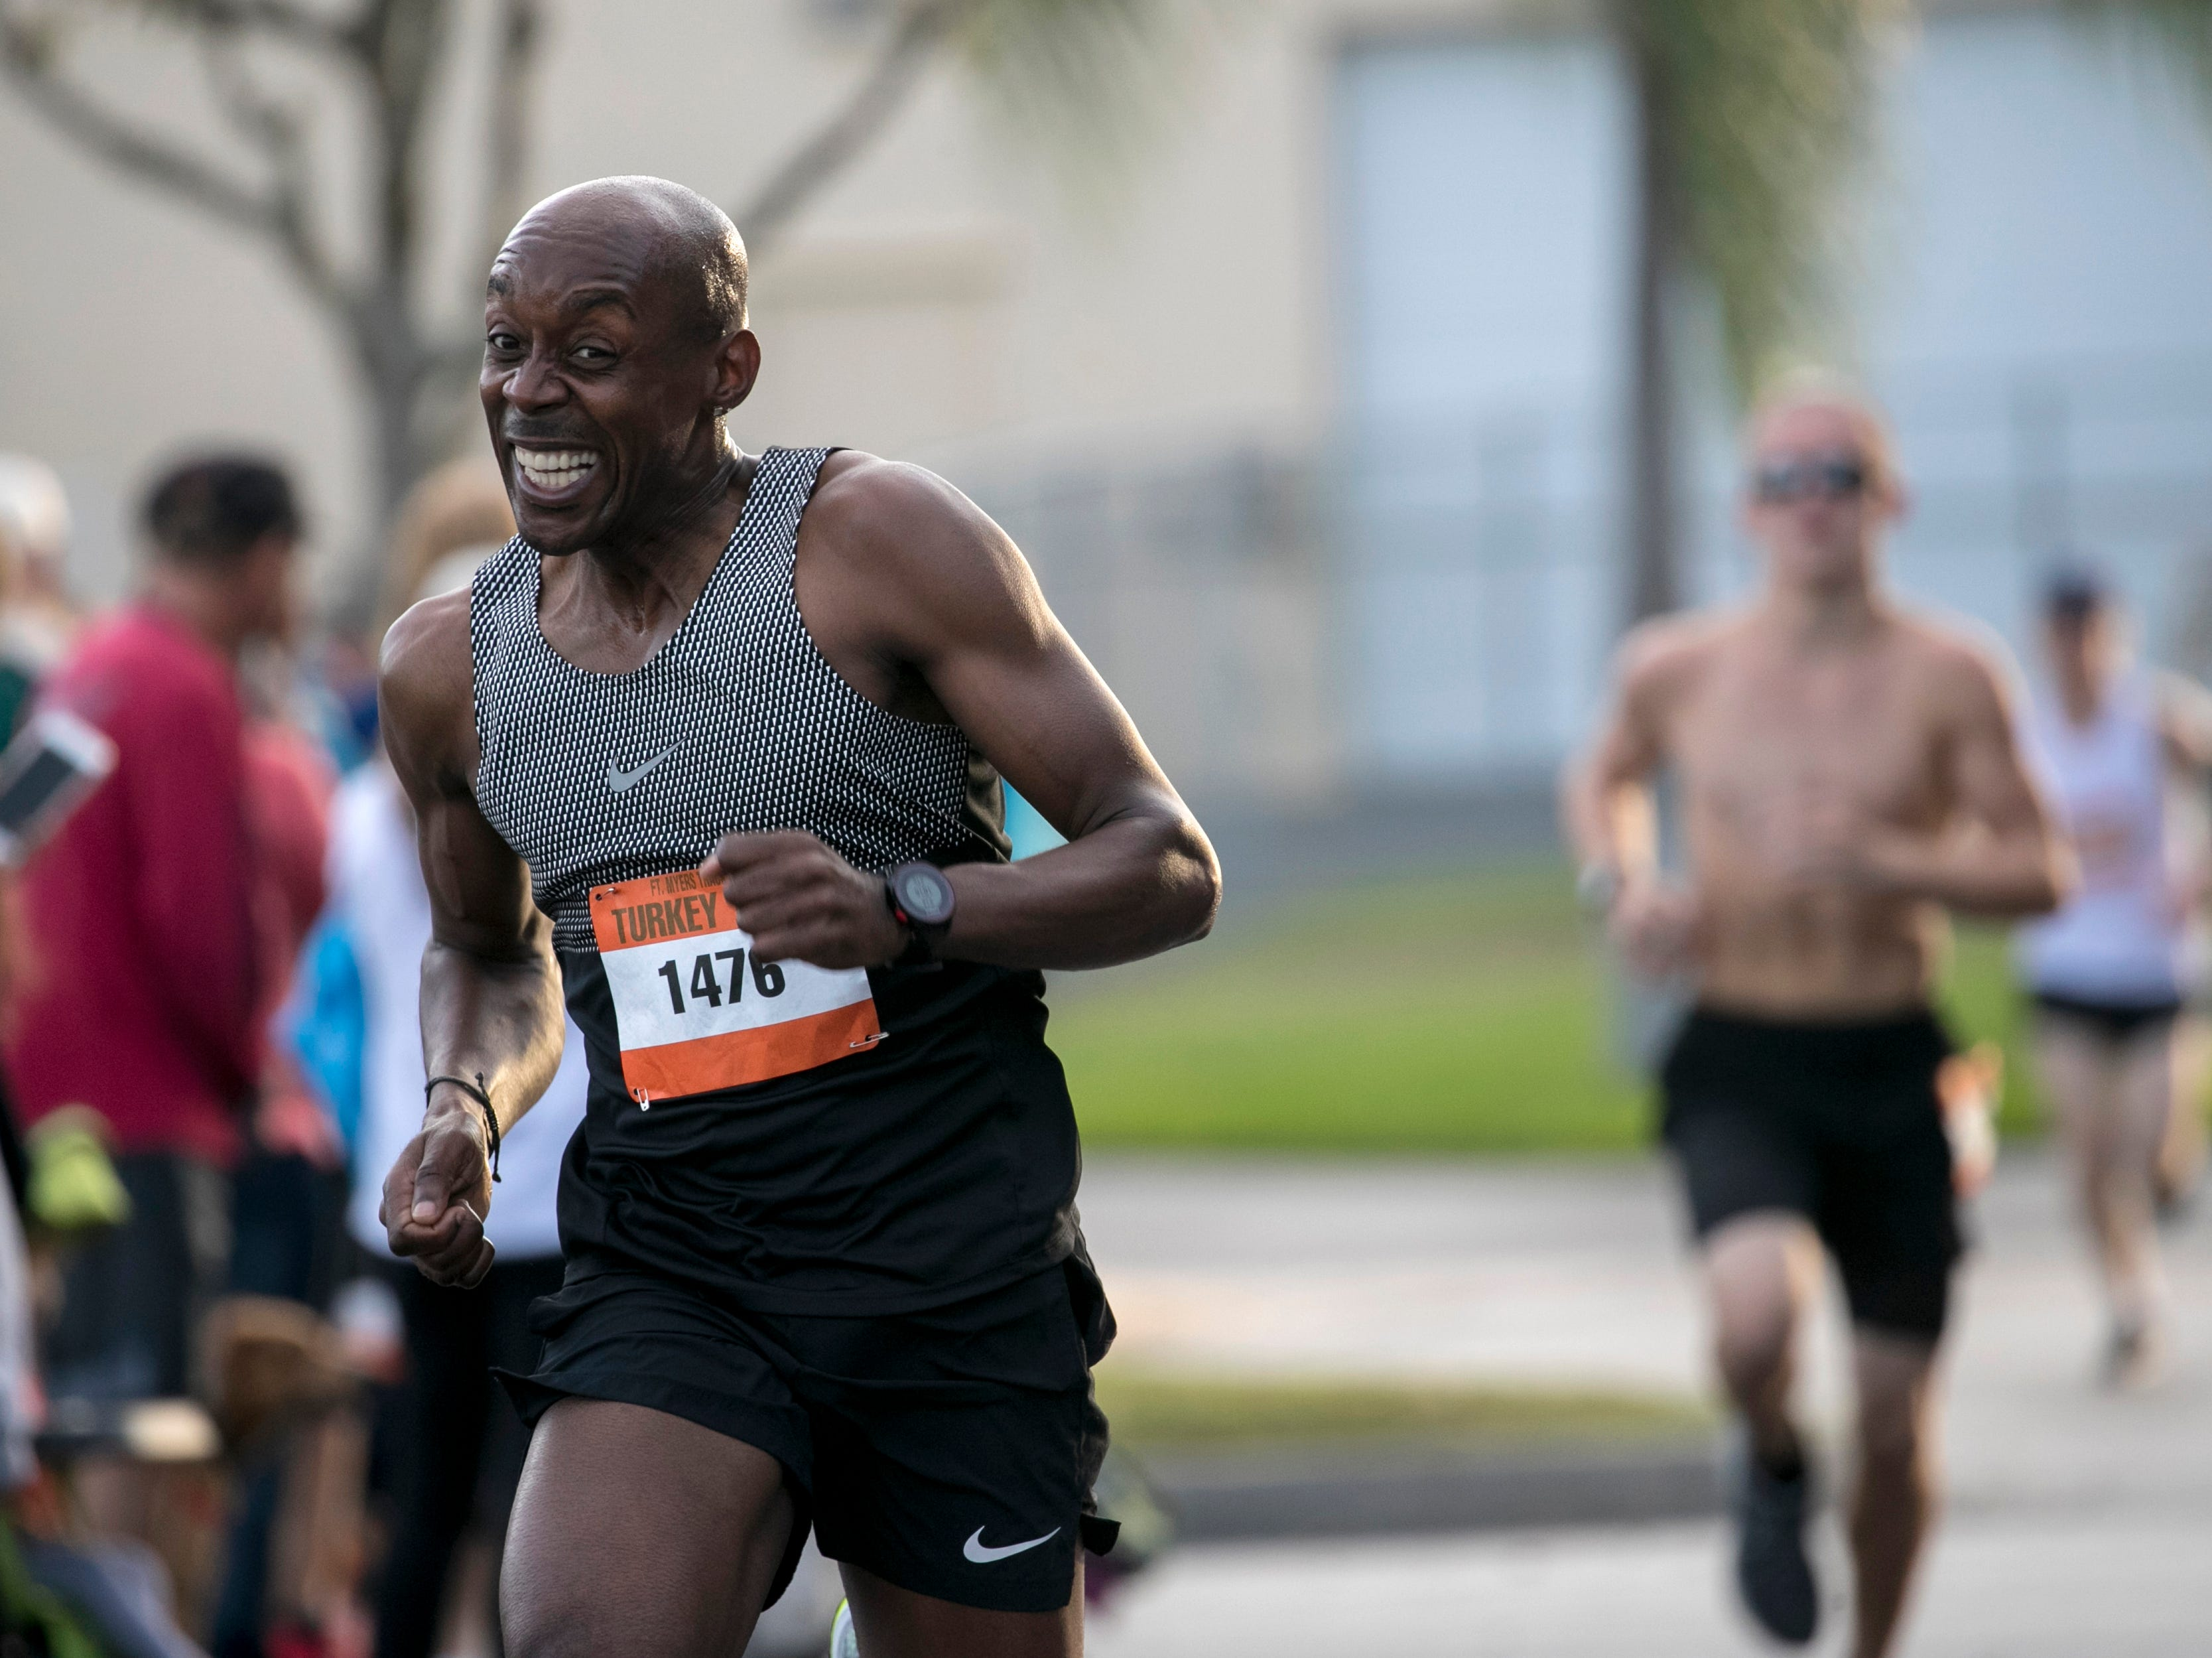 Gregory Adman pushes toward the finish in the 39th Annual Turkey Trot 5K Run/Walk on Thursday, November 22, 2018, in Cape Coral.